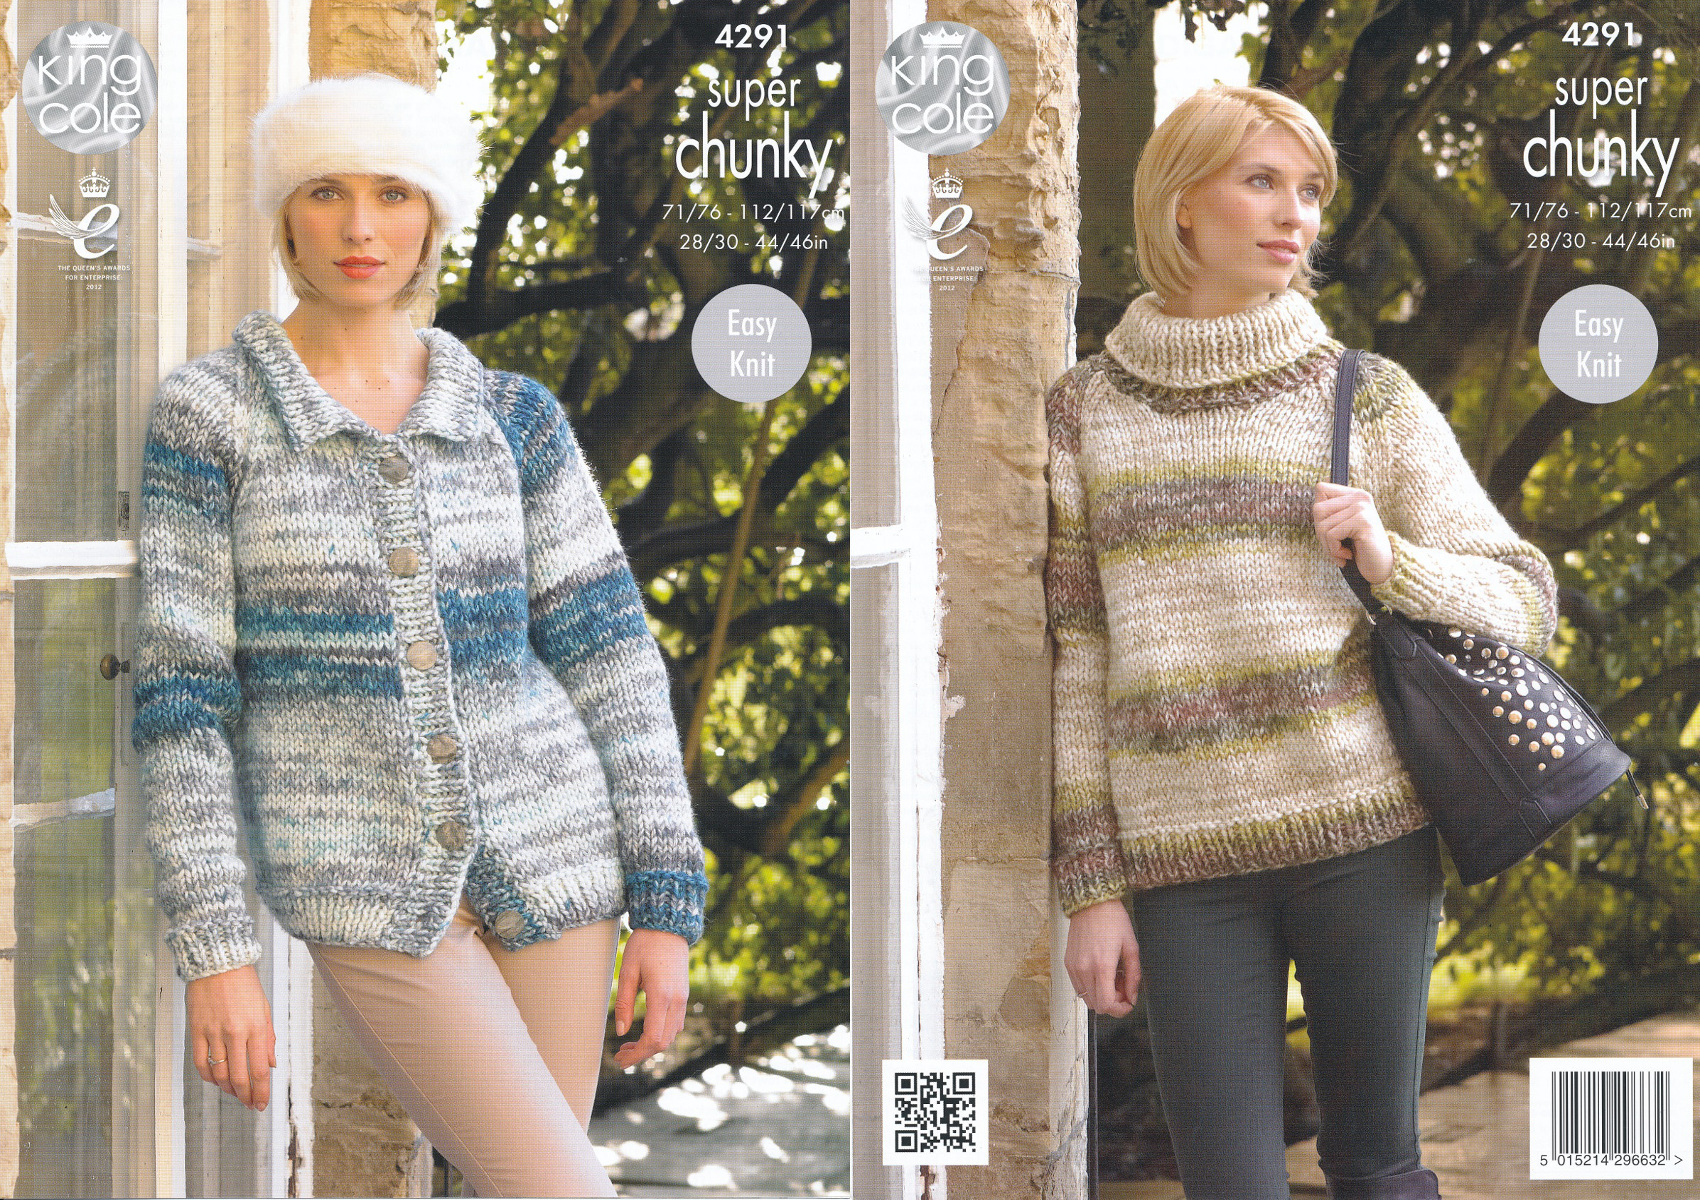 King Cole Ladies Easy Knit Super Chunky Knitting Pattern Sweater ...